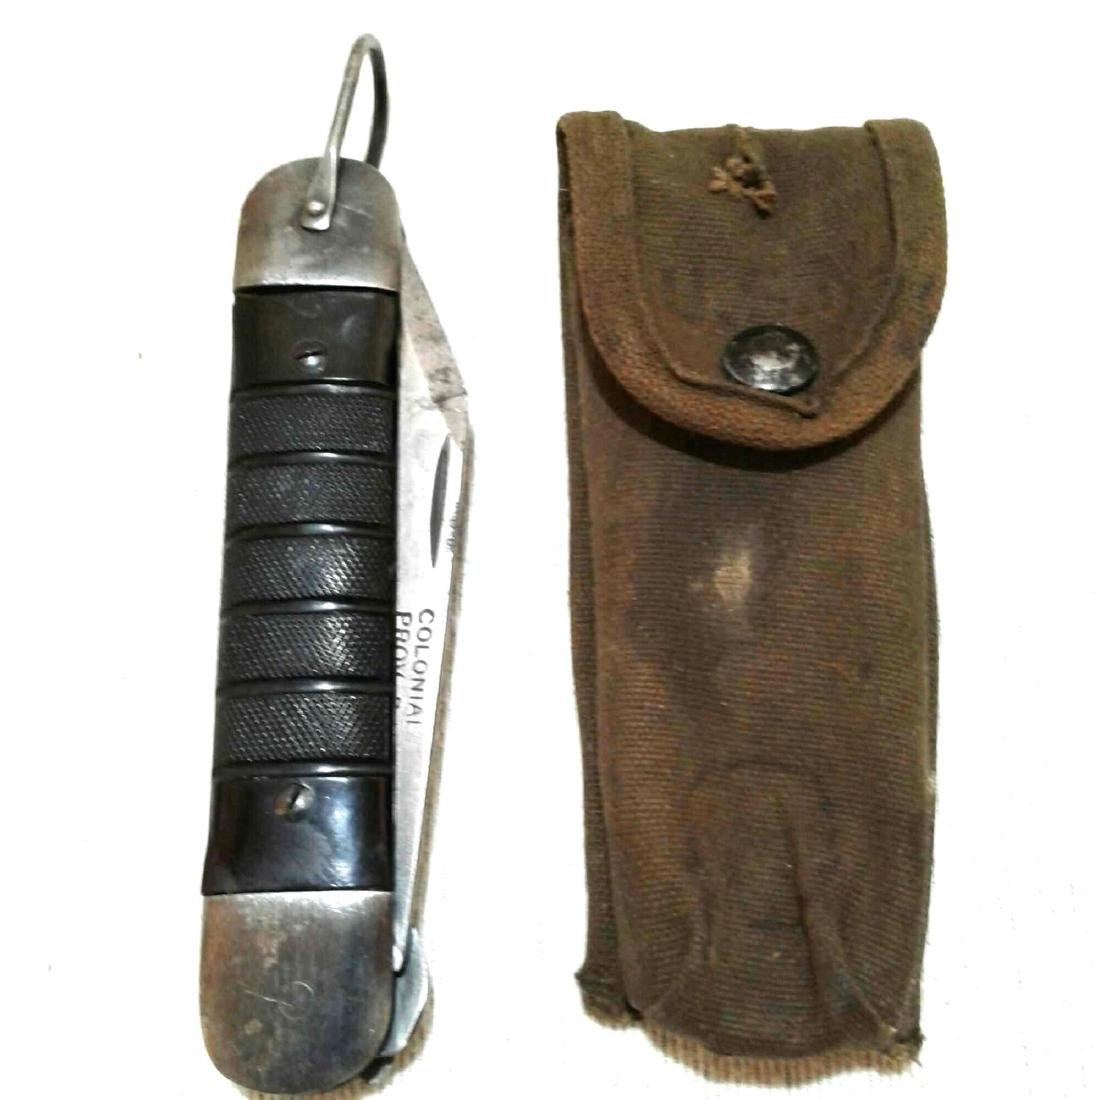 WWII Pilot Survival Knife with US Pouch